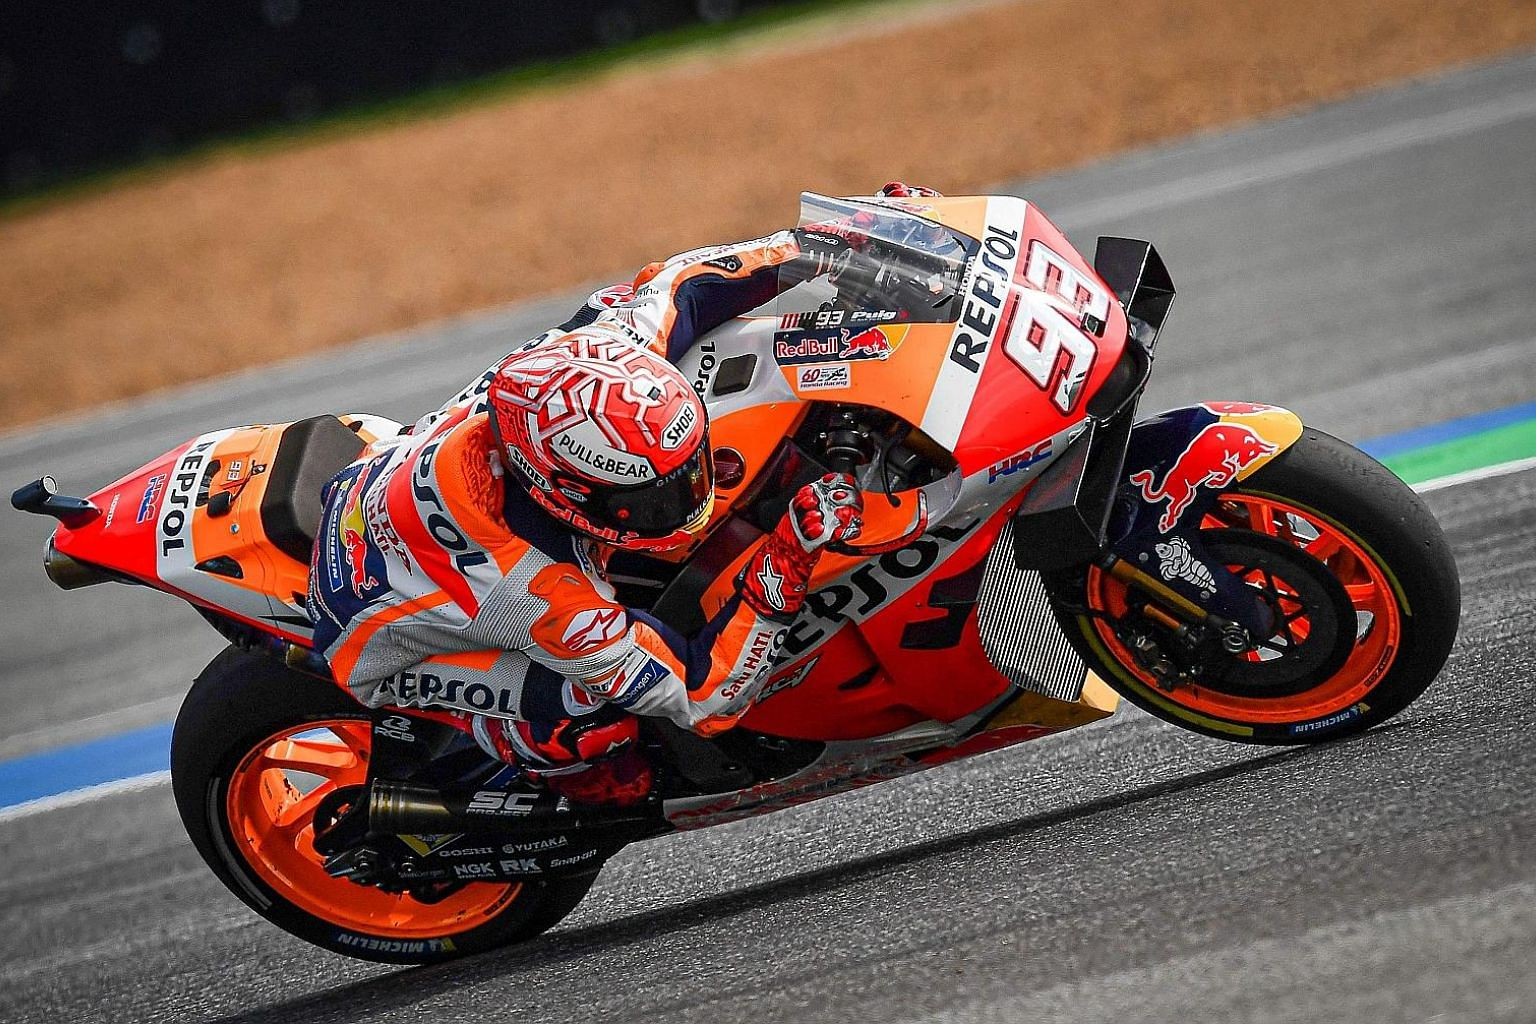 Marc Marquez on the way to retaining his Thai MotoGP title in Buriram yesterday and sealing a sixth championship in the highest class.